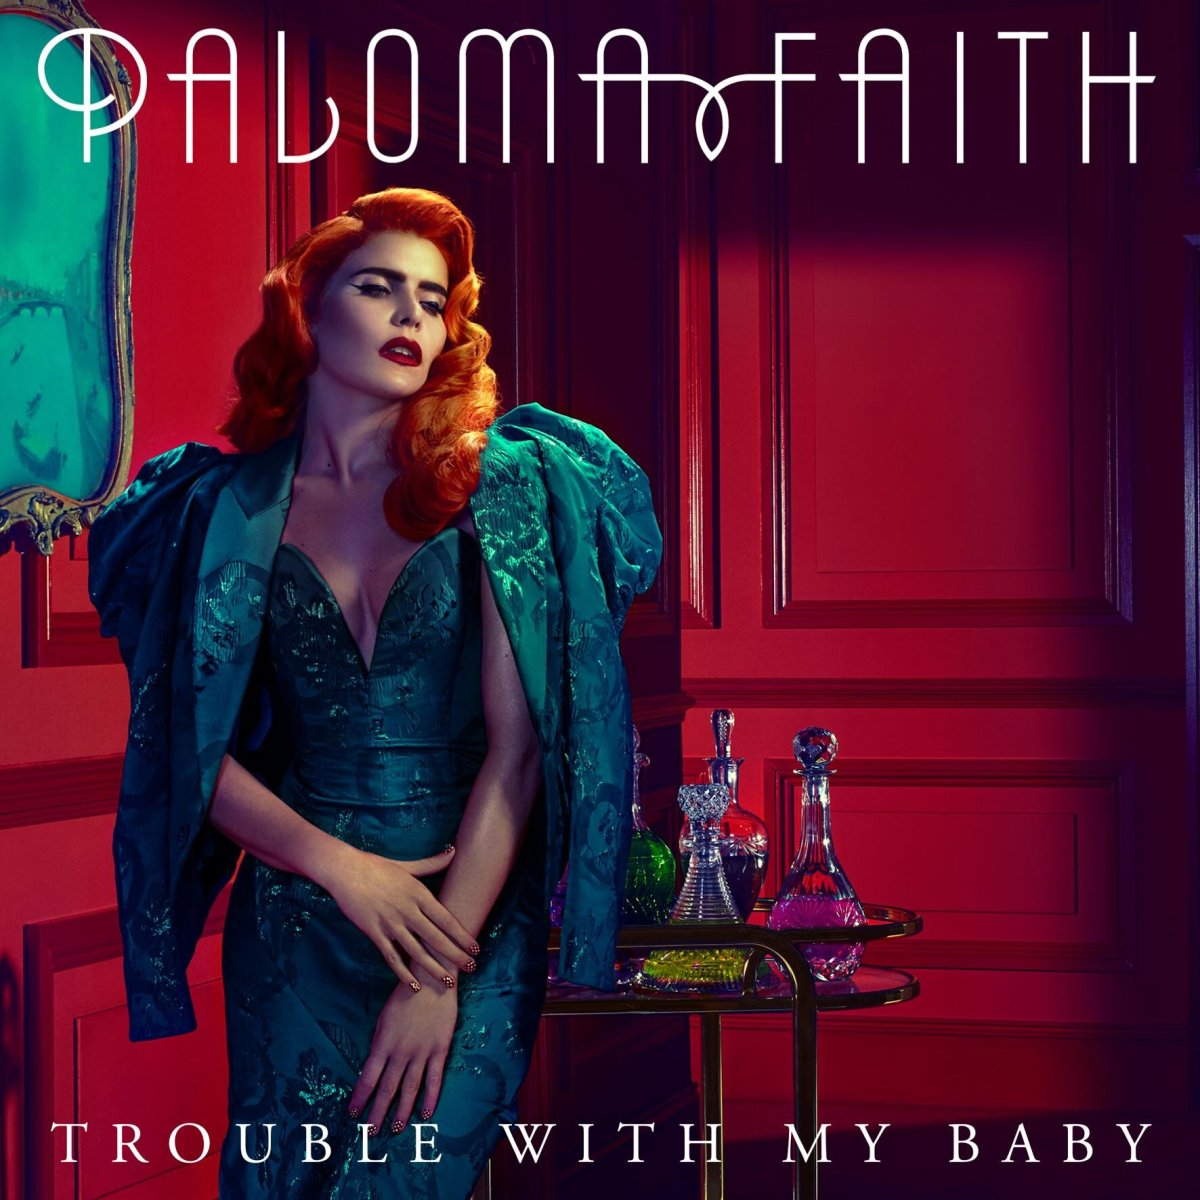 Hot Video Alert: Paloma Faith - Trouble With My Baby